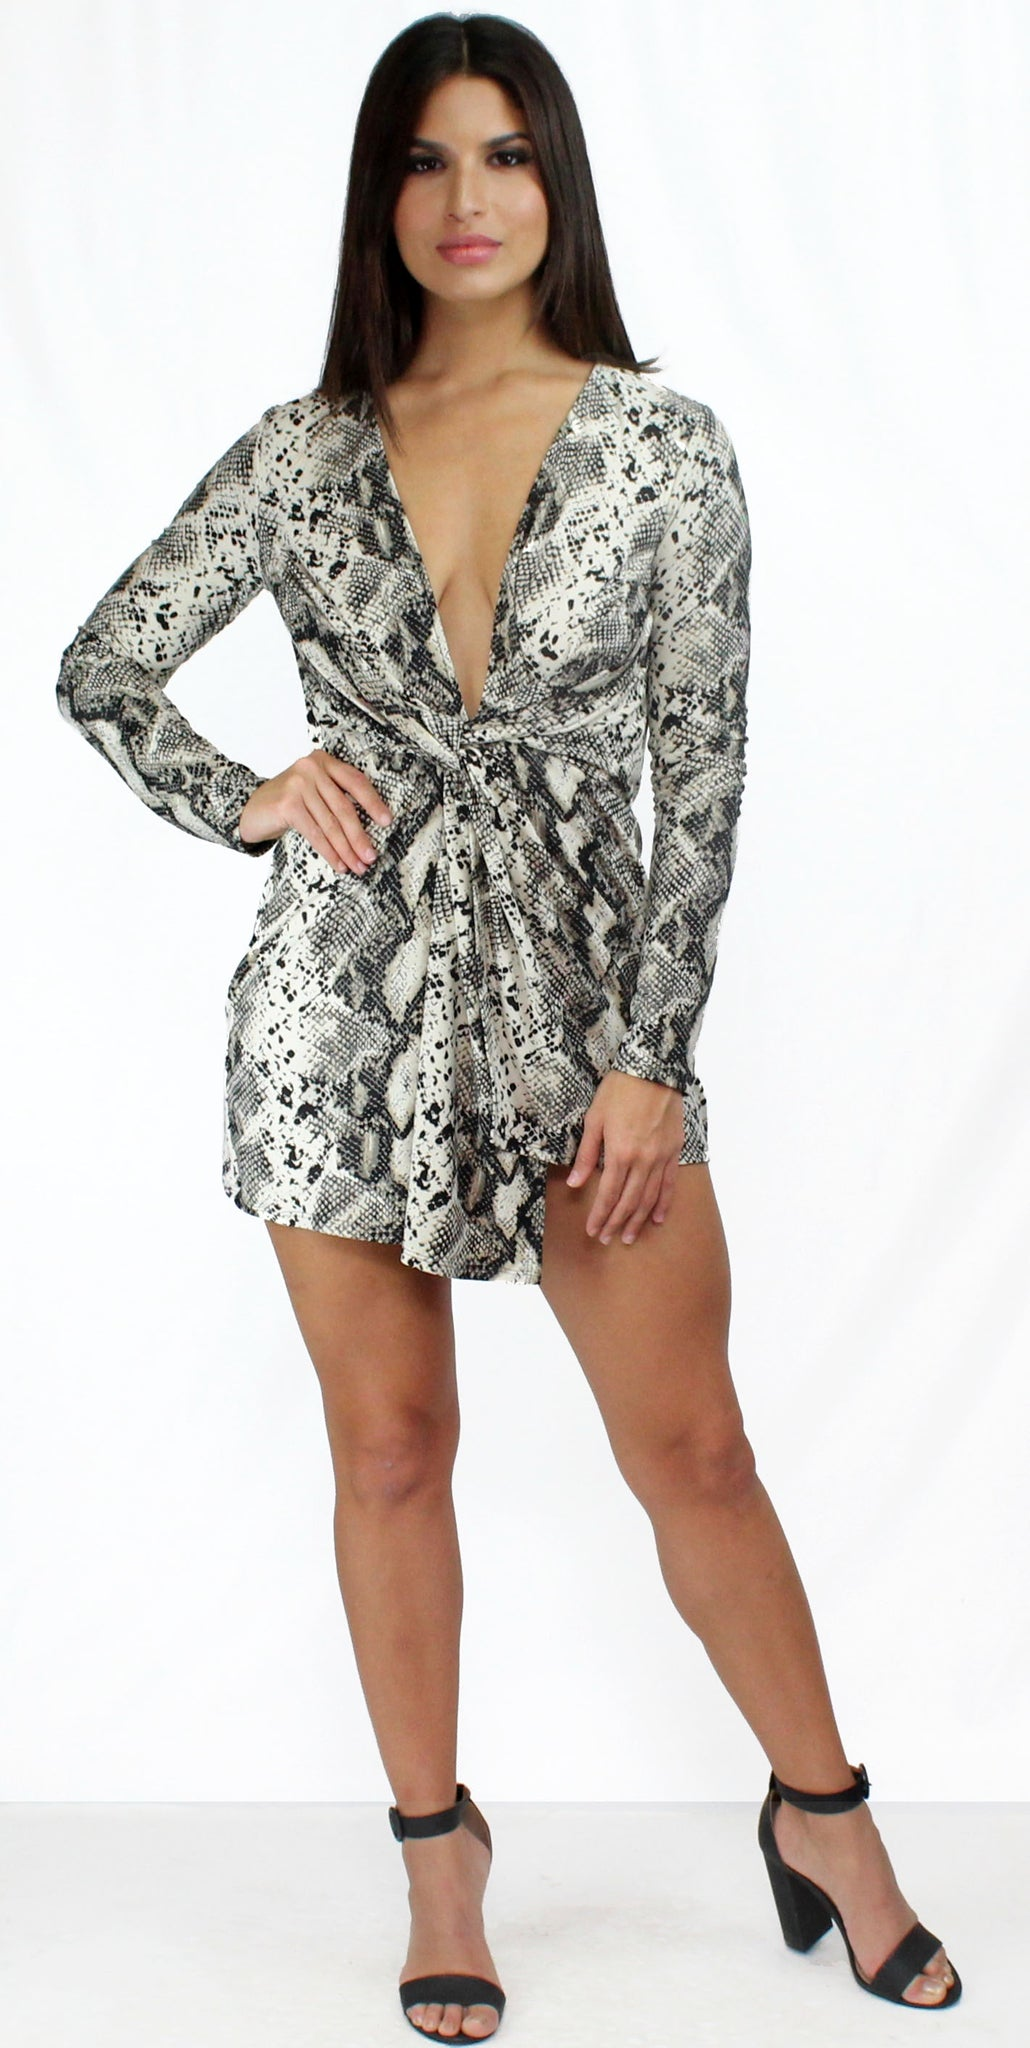 Wonderfully Wild Grey Snake Print Dress